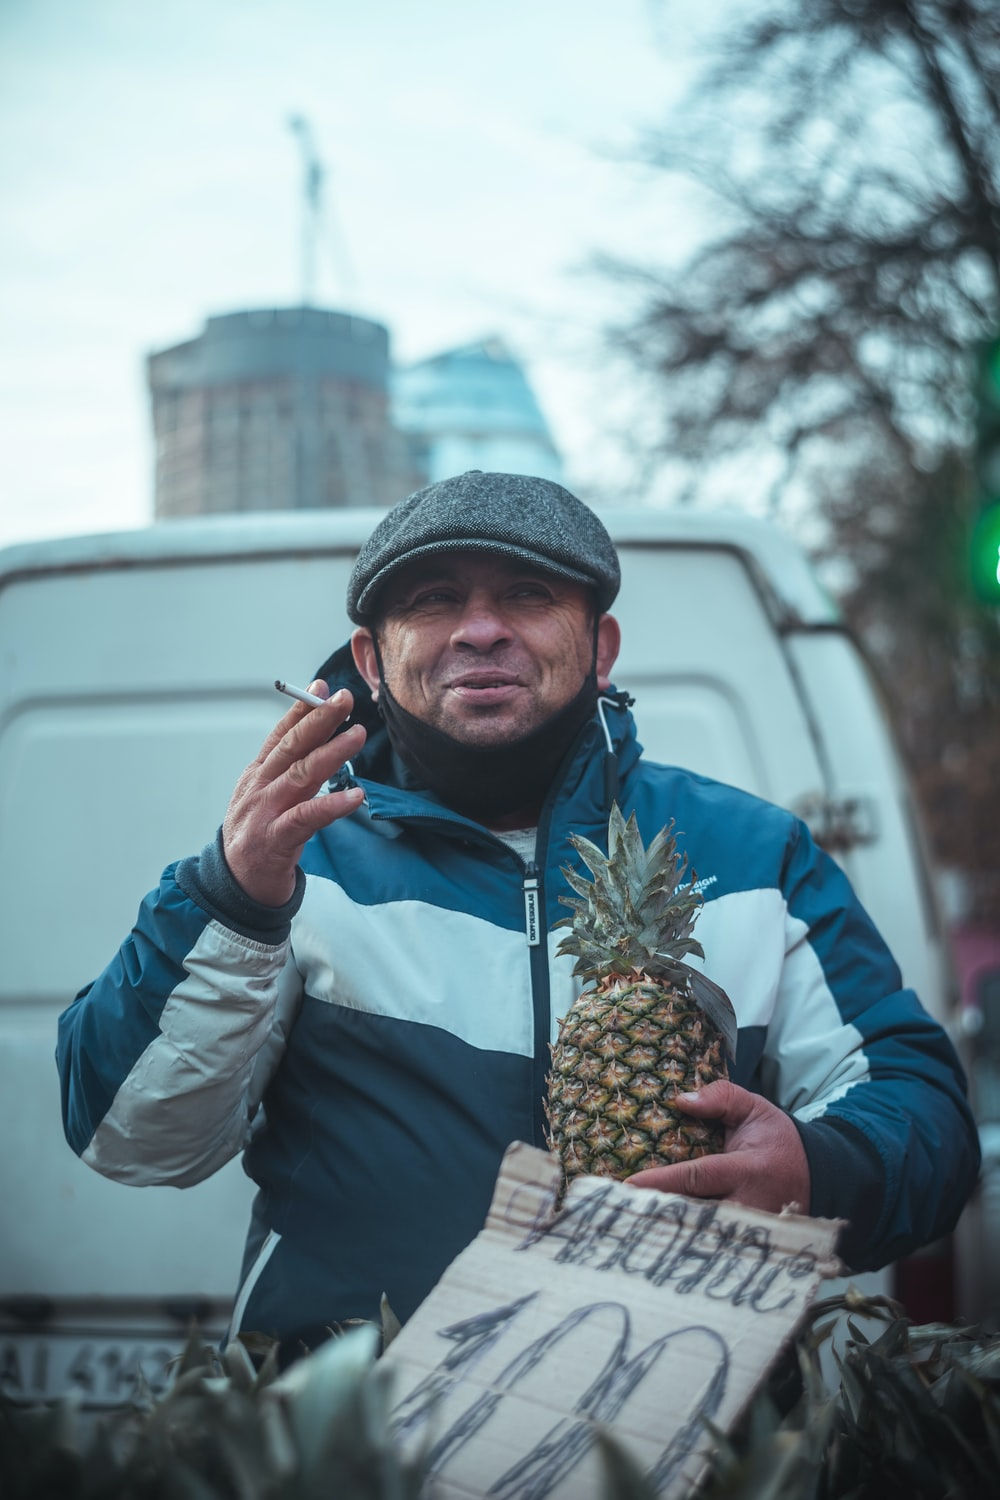 man in blue jacket and gray knit cap holding pineapple fruit